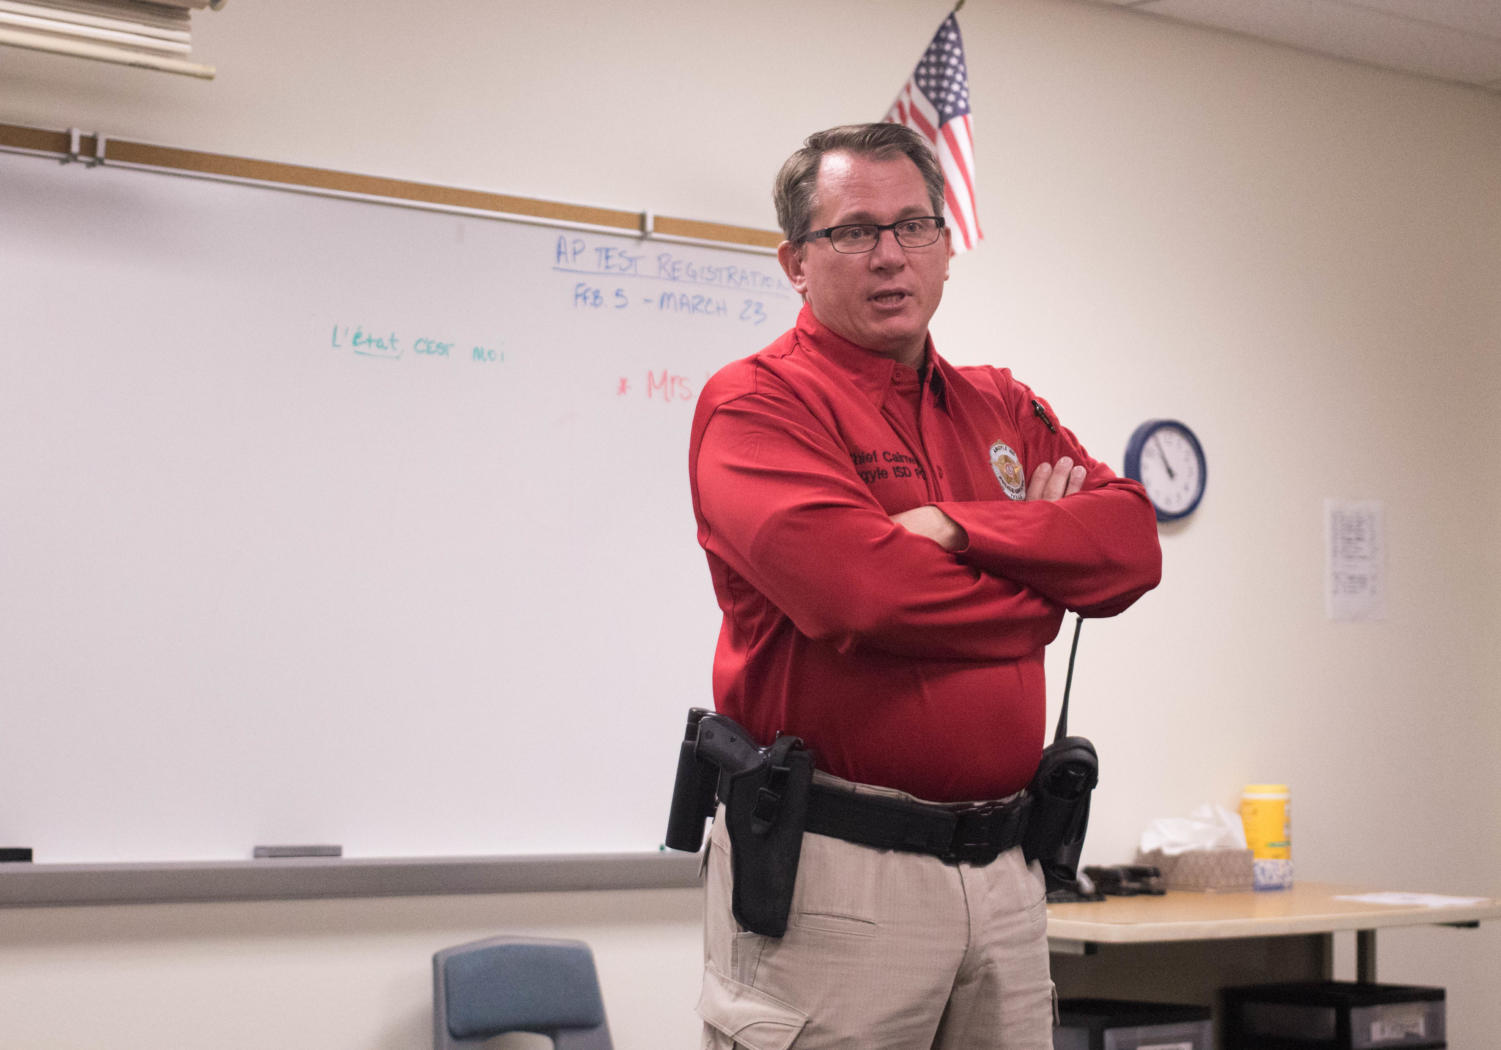 AISD Police Chief Paul Cairney speaks to students about the dangers of vaping and taking prescription medication recreationally at Argyle High School on Feb. 23, 2018. (Jaclyn Harris / The Talon News)